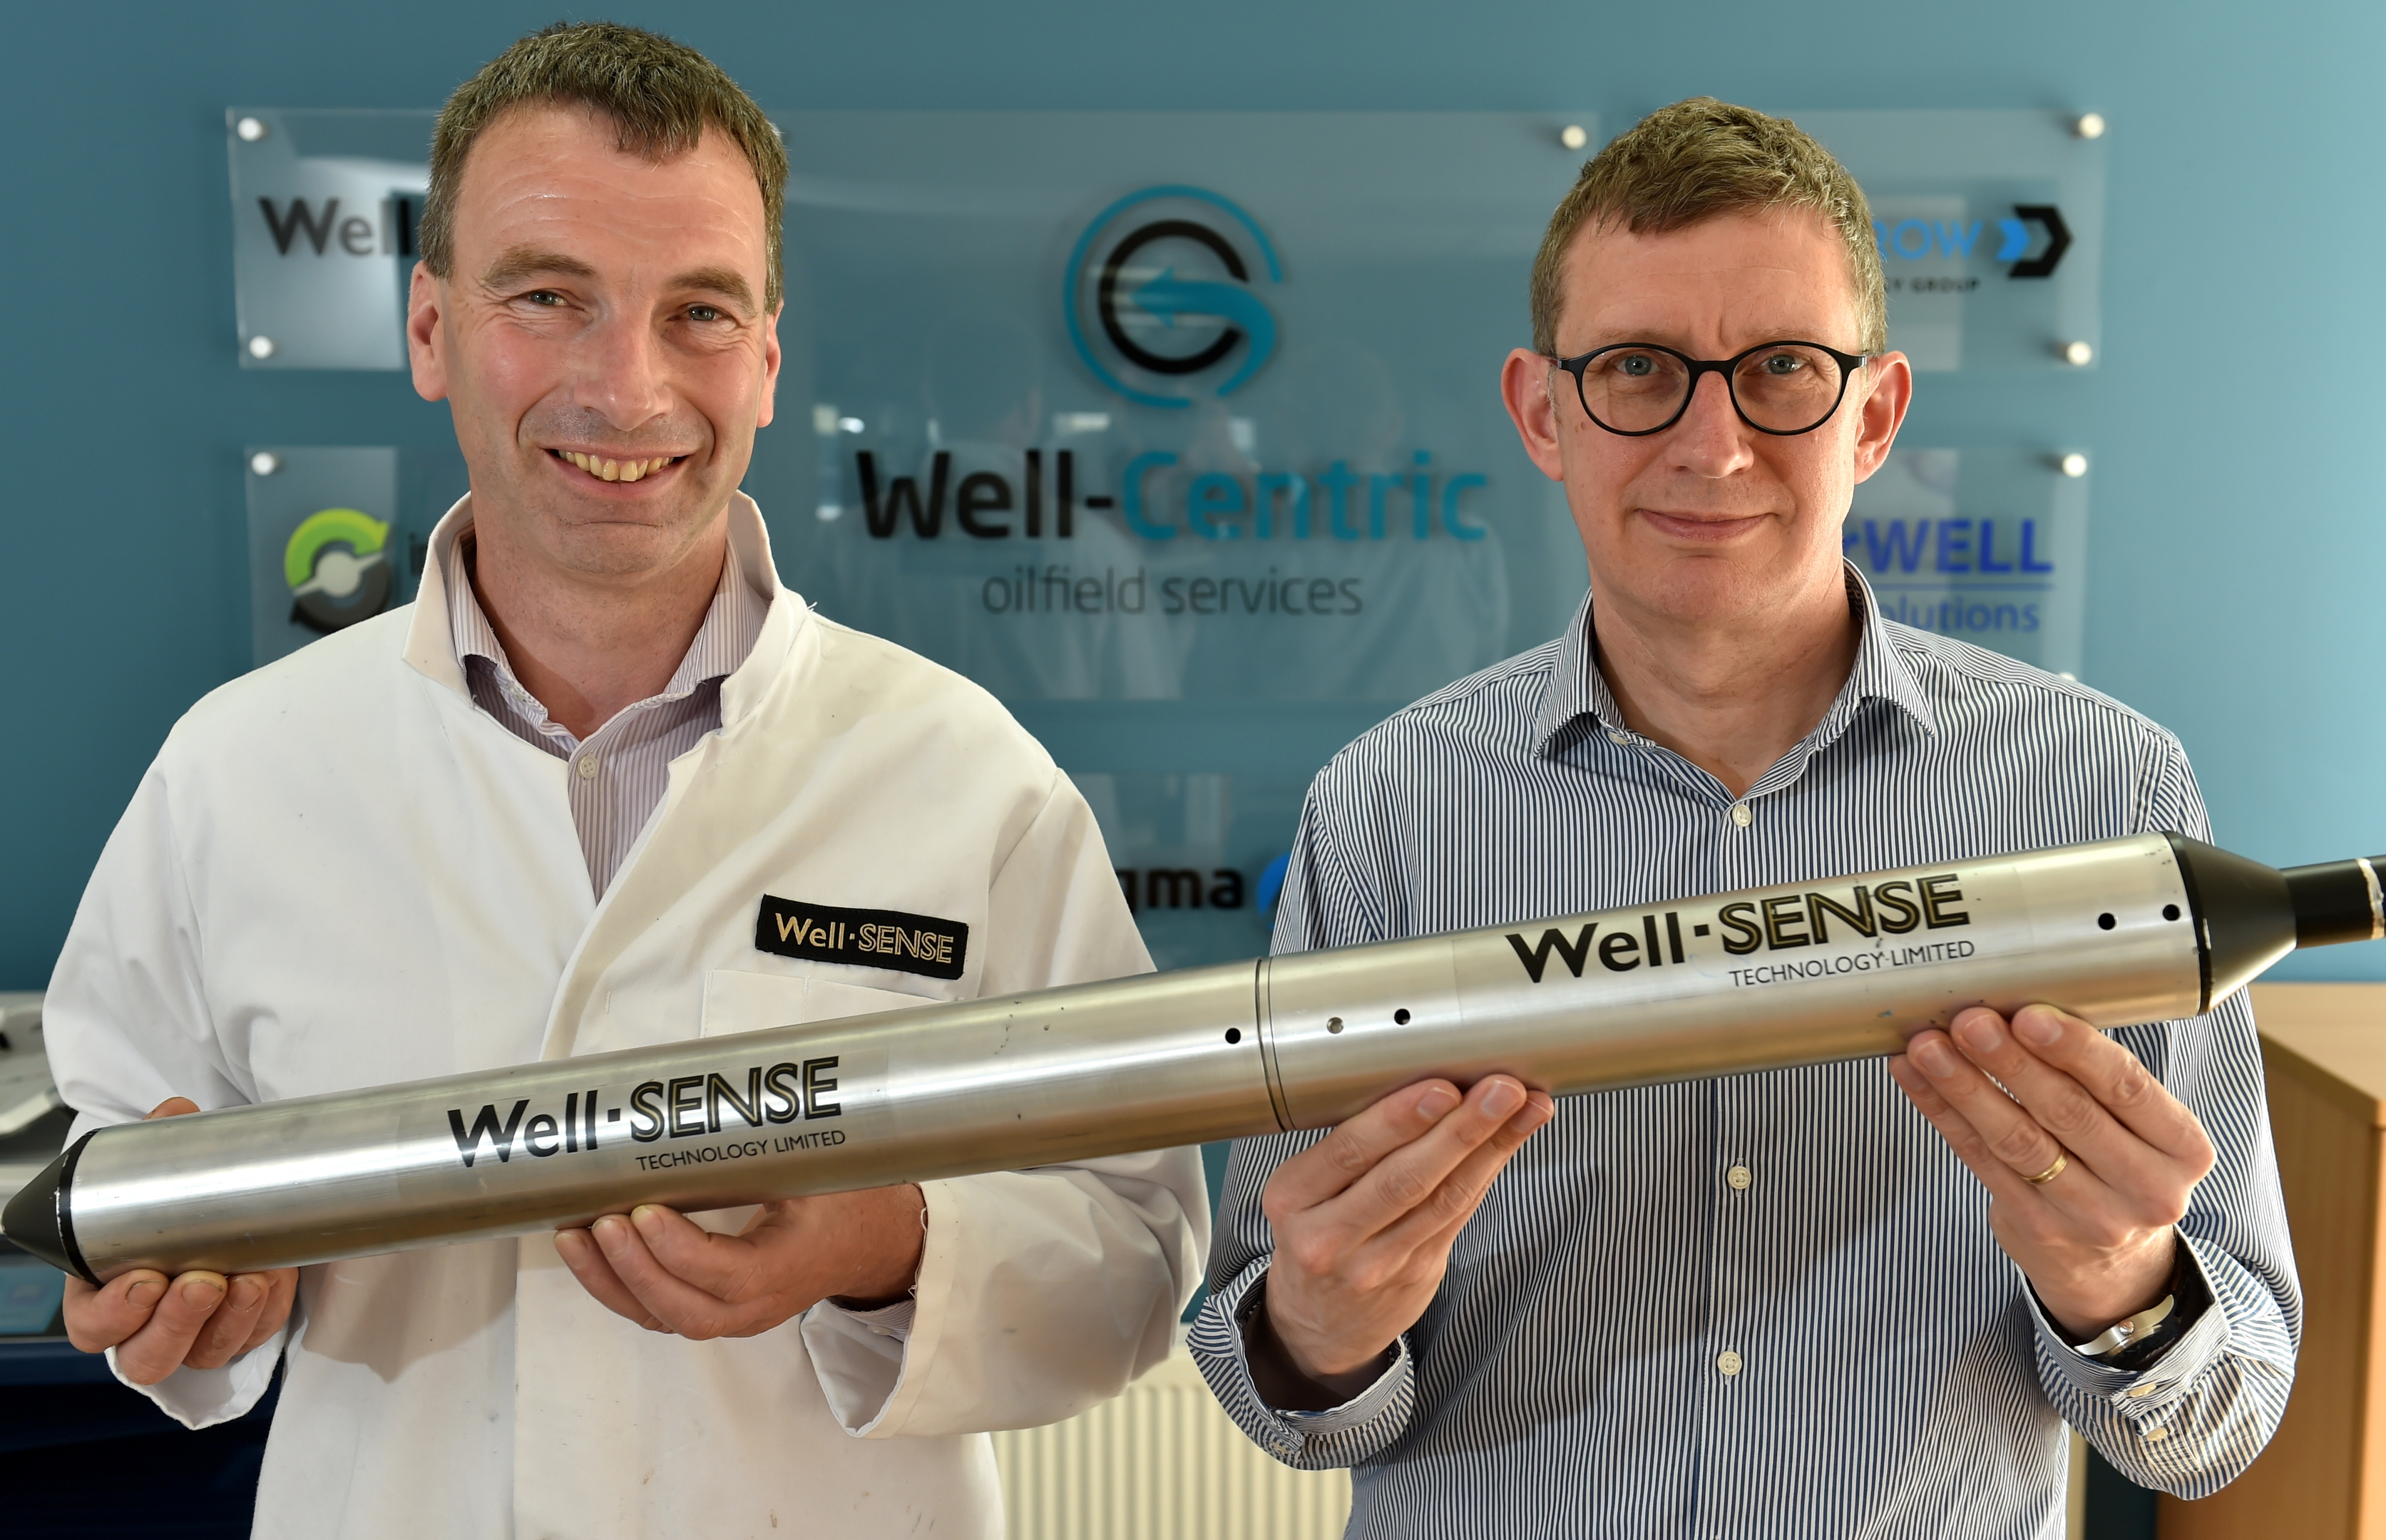 (L-R) Dan Purkis, technology director at Well-Sense Technology, and Stuart Ferguson, chief executive of FrontRow Energy Techology Group, holding an FLI system.